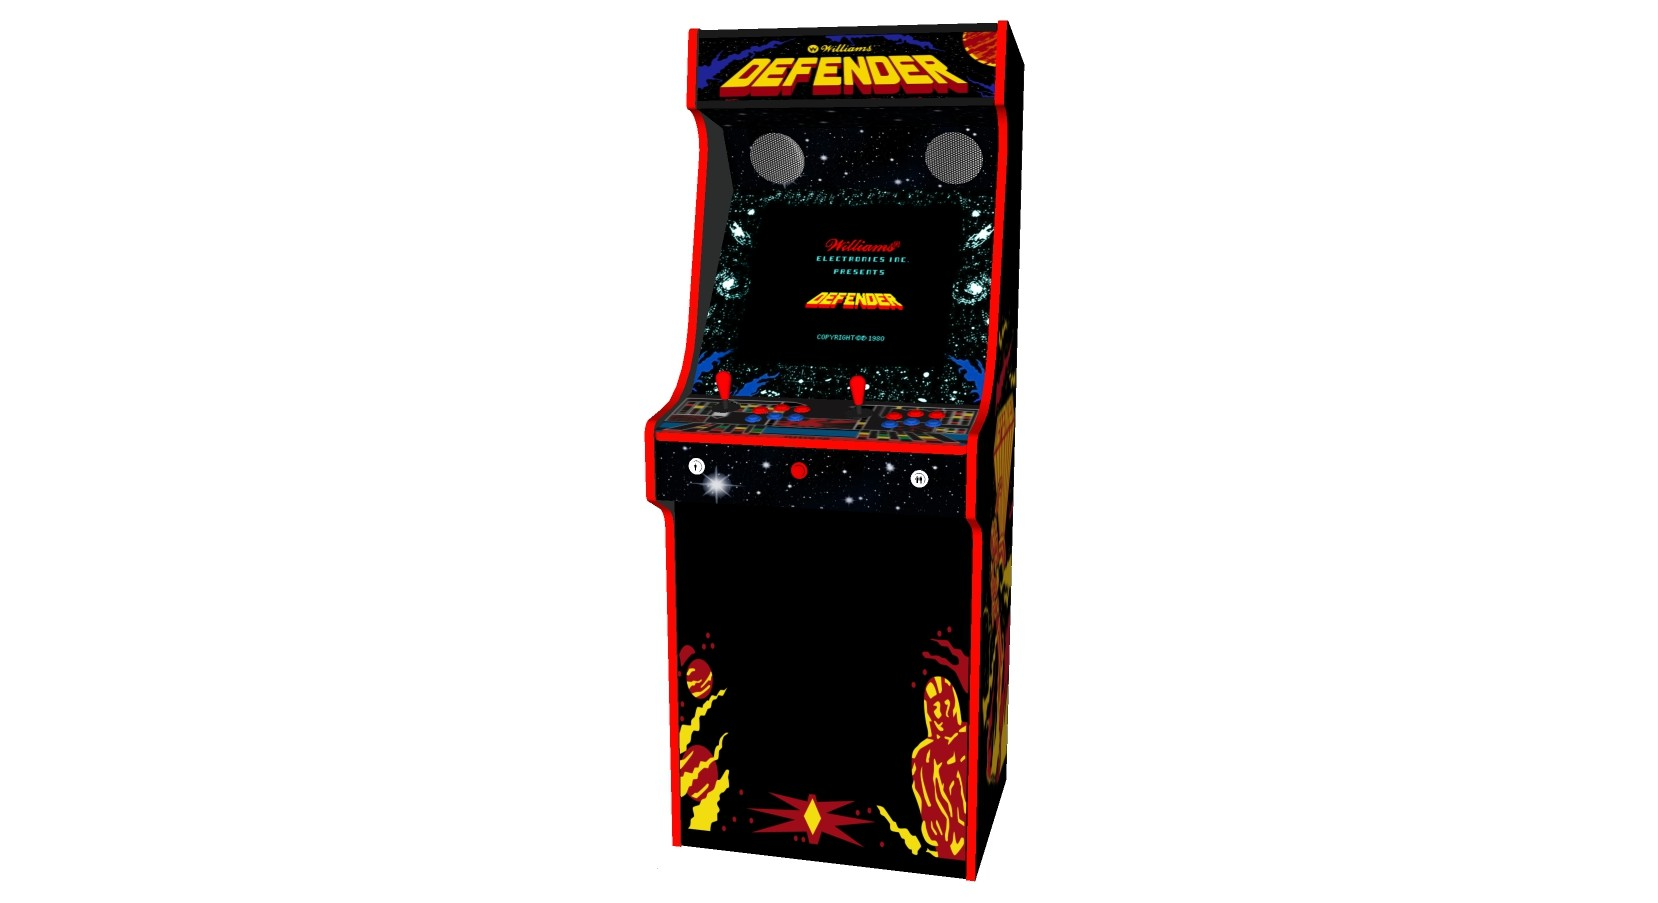 Defender Arcade Machine 2 Player Upright - Middle